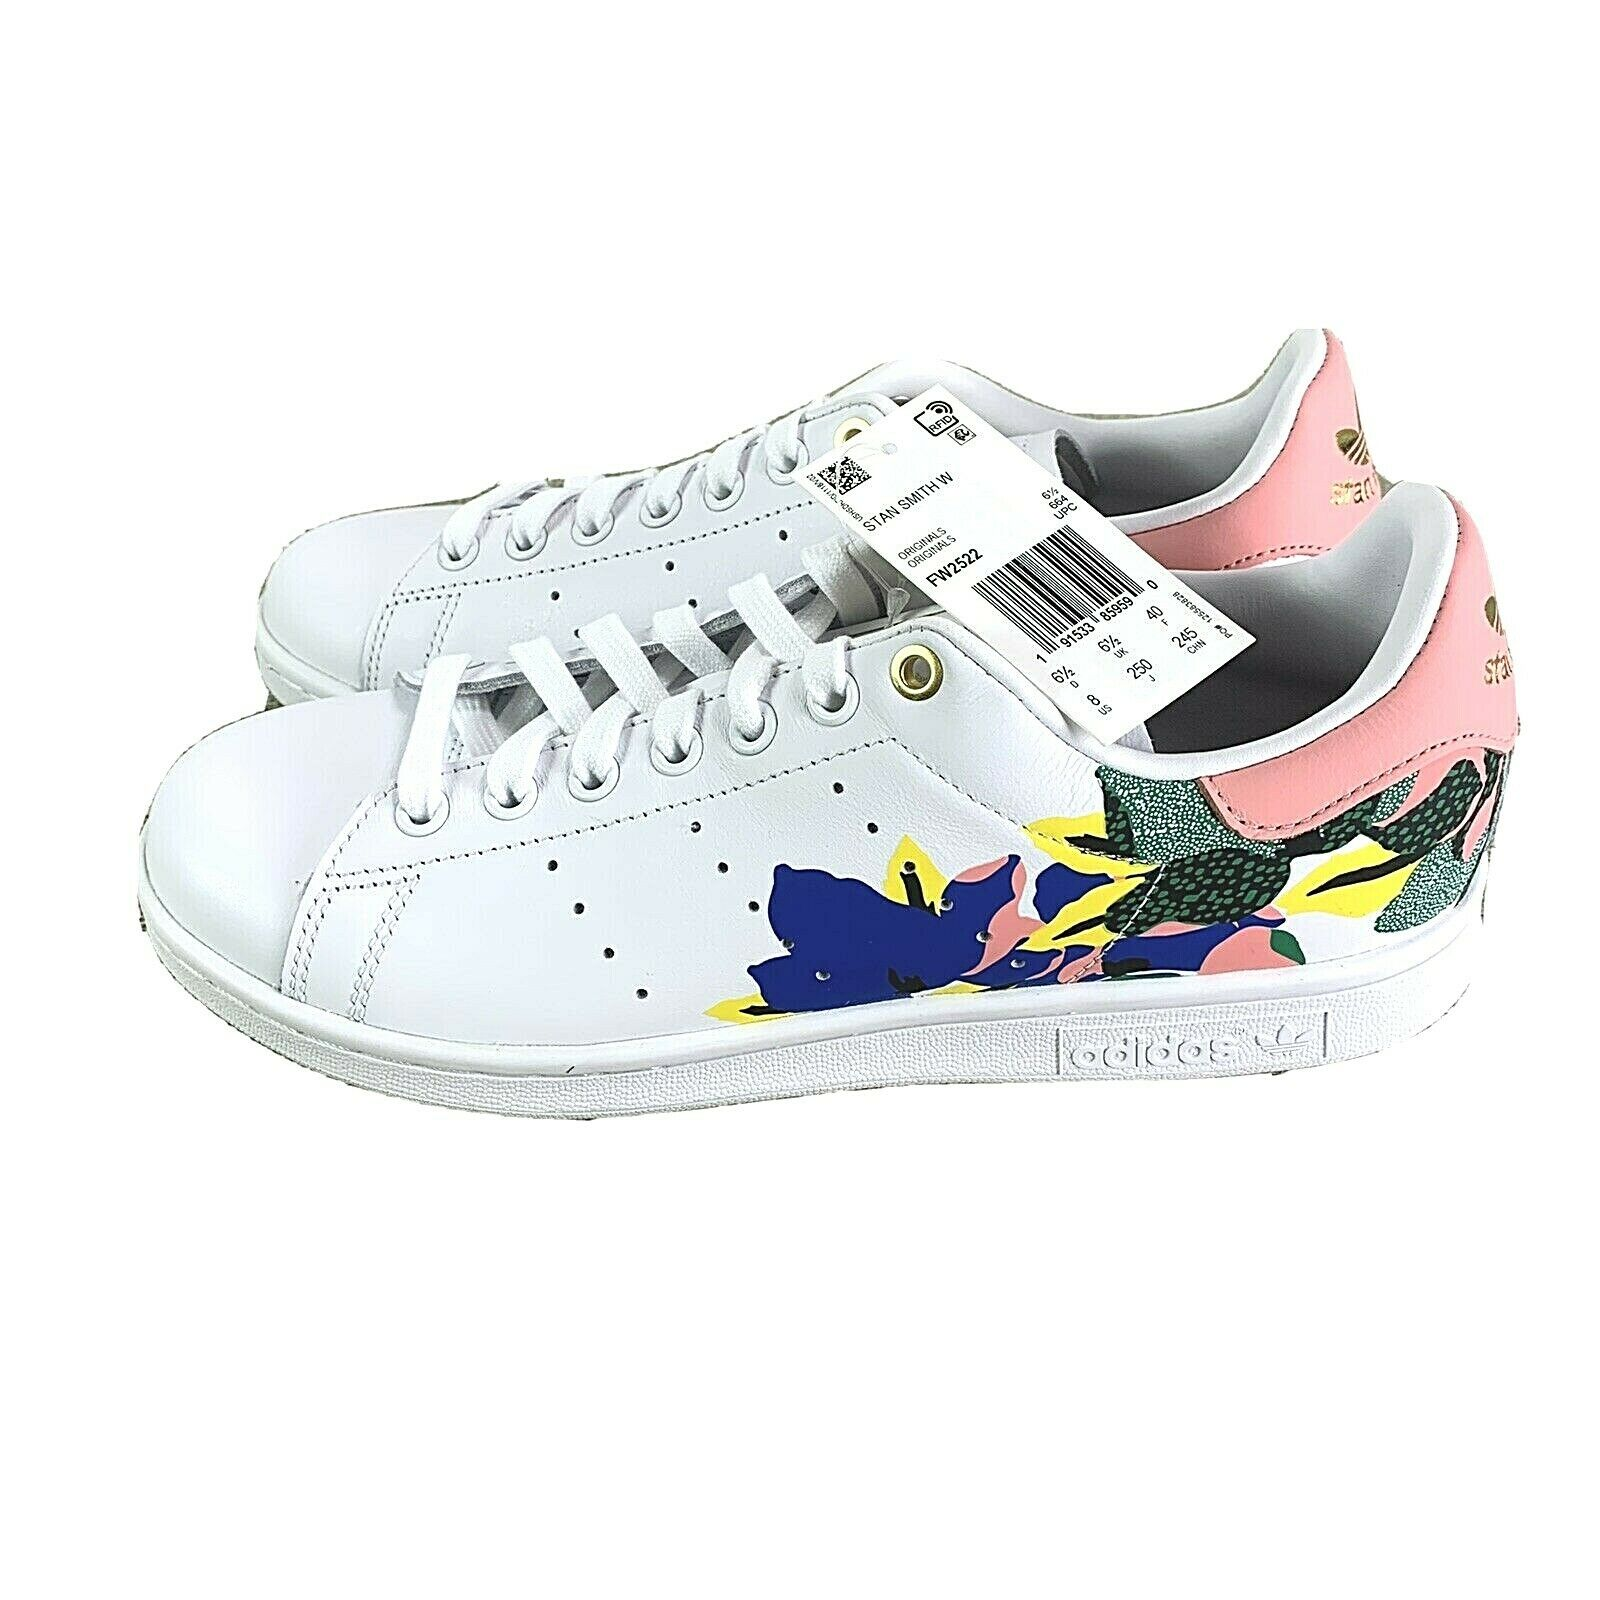 Size 8 - adidas Stan Smith x Her Studio London Floral Burst for ...